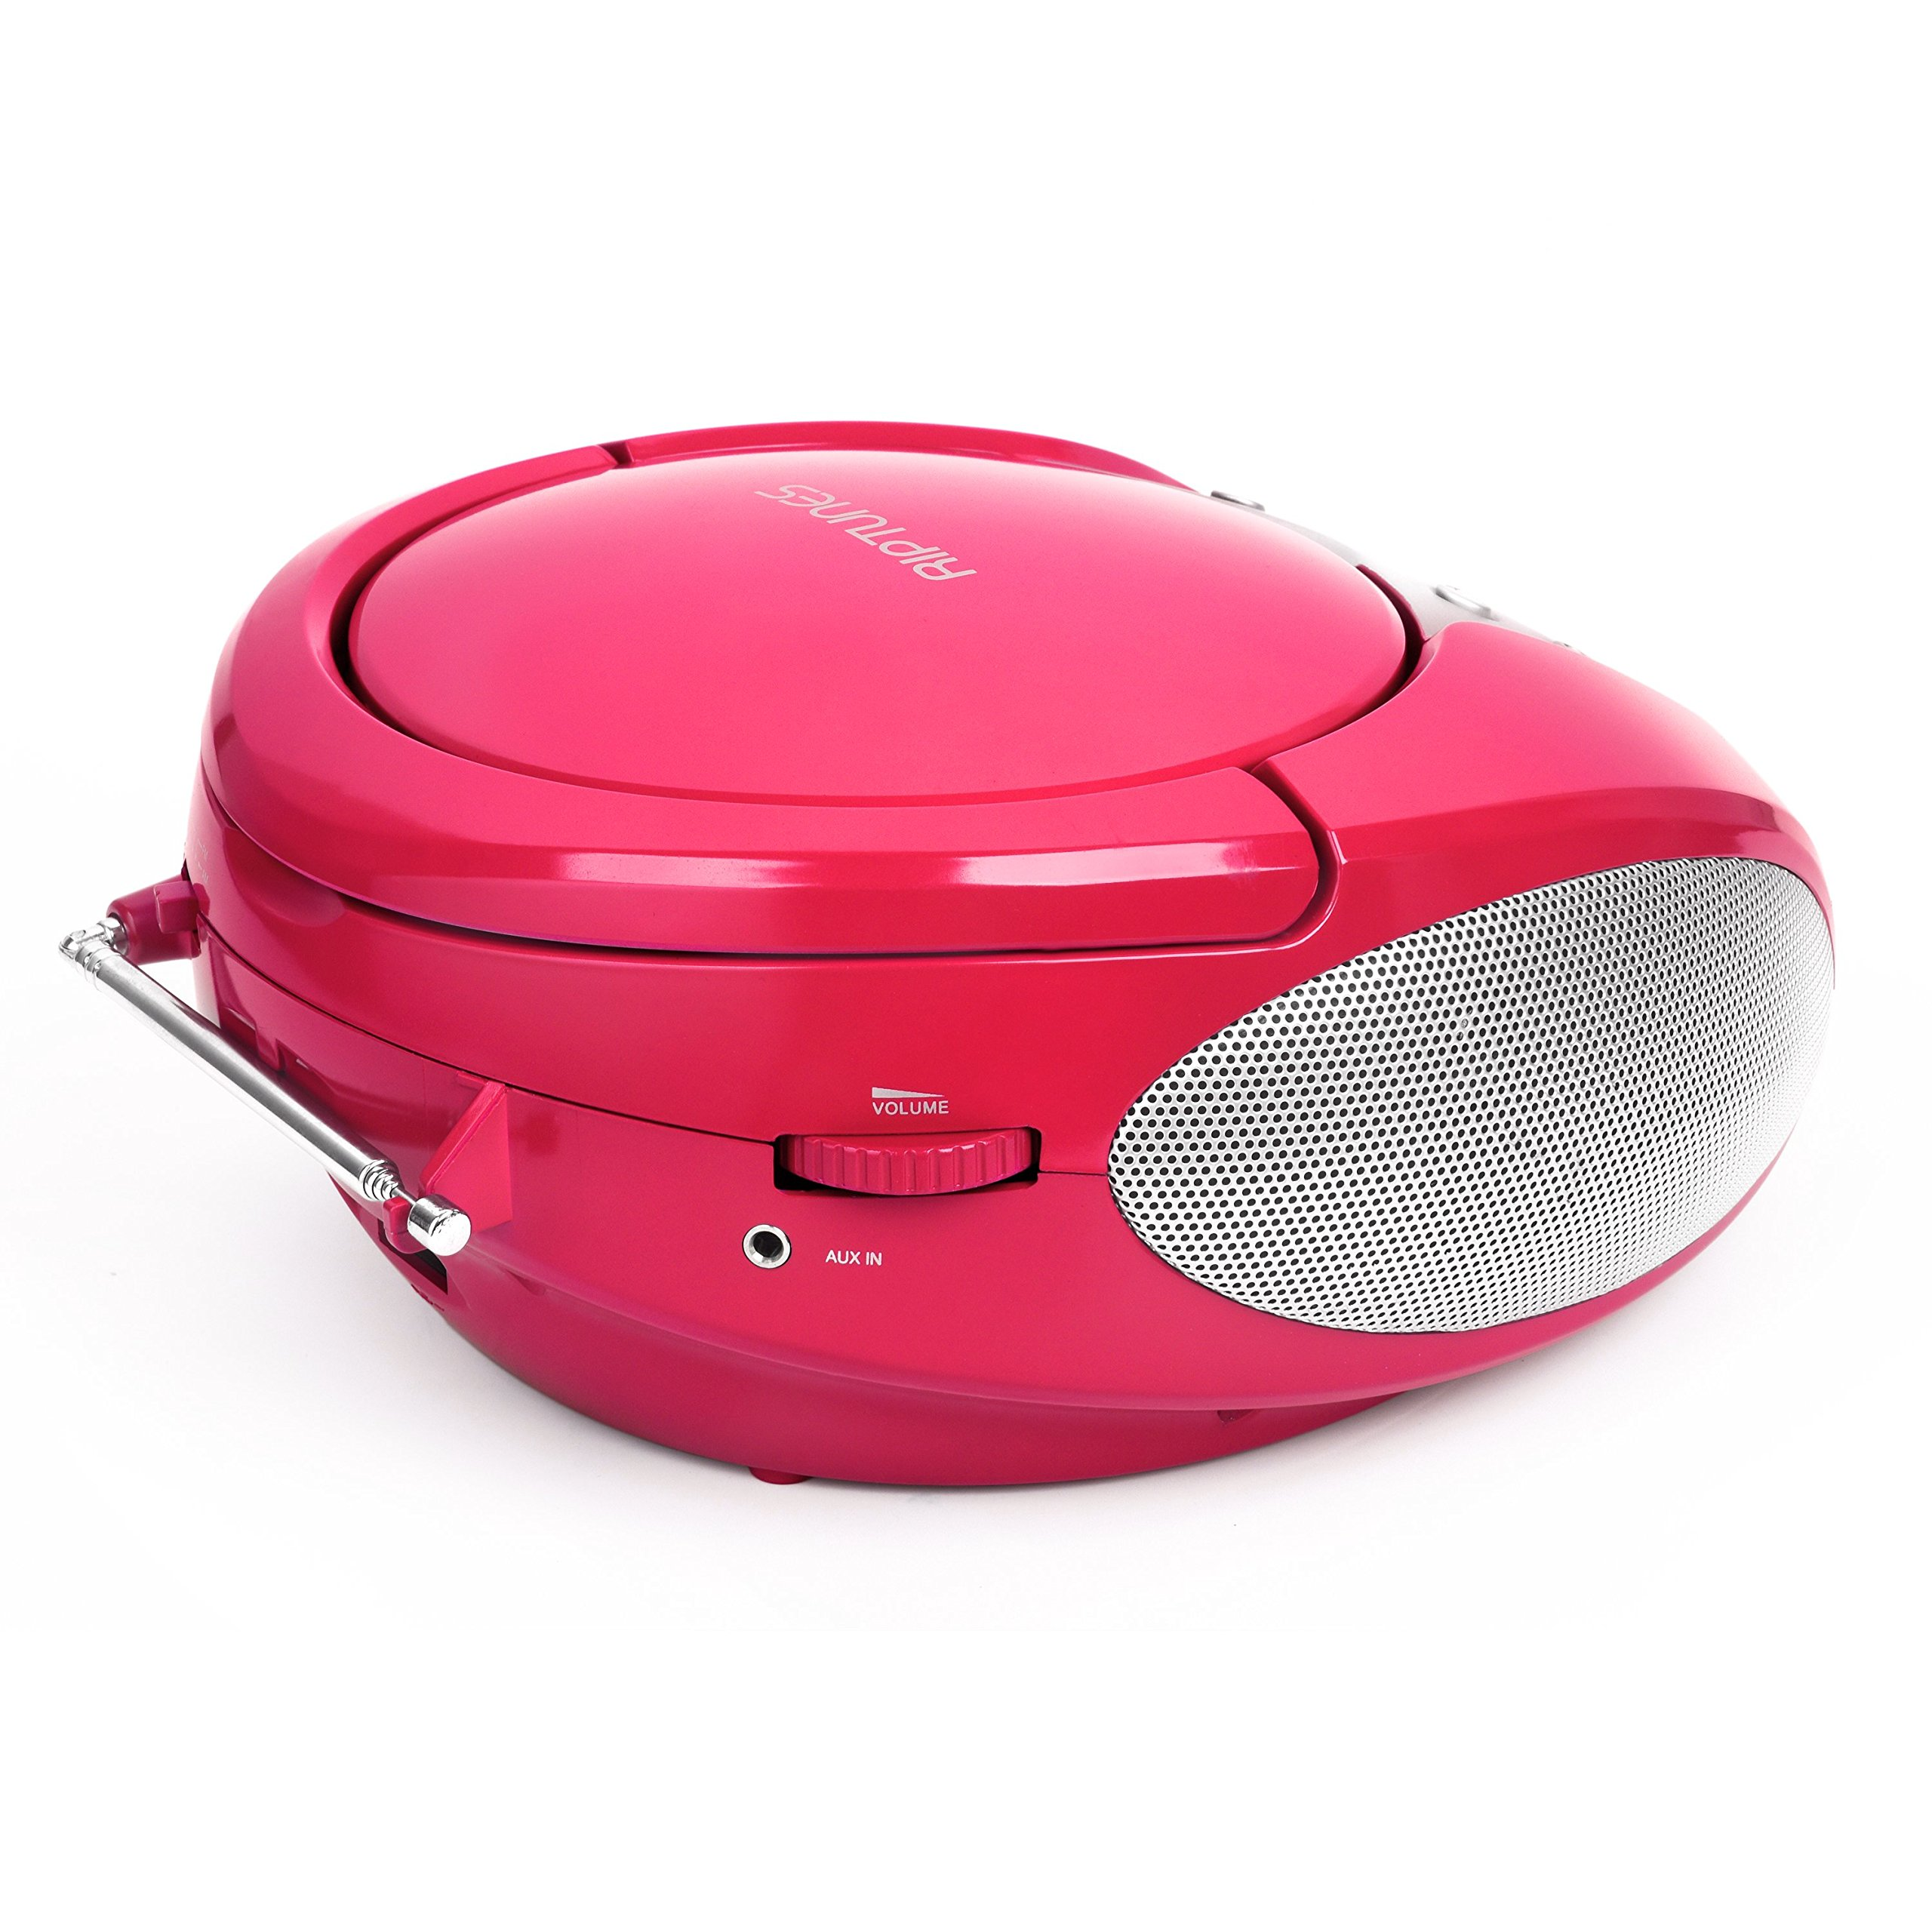 Riptunes Portable CD Player with AM FM Radio Potable radios Boom Box with Aux Line-in, Pink by Riptunes (Image #5)